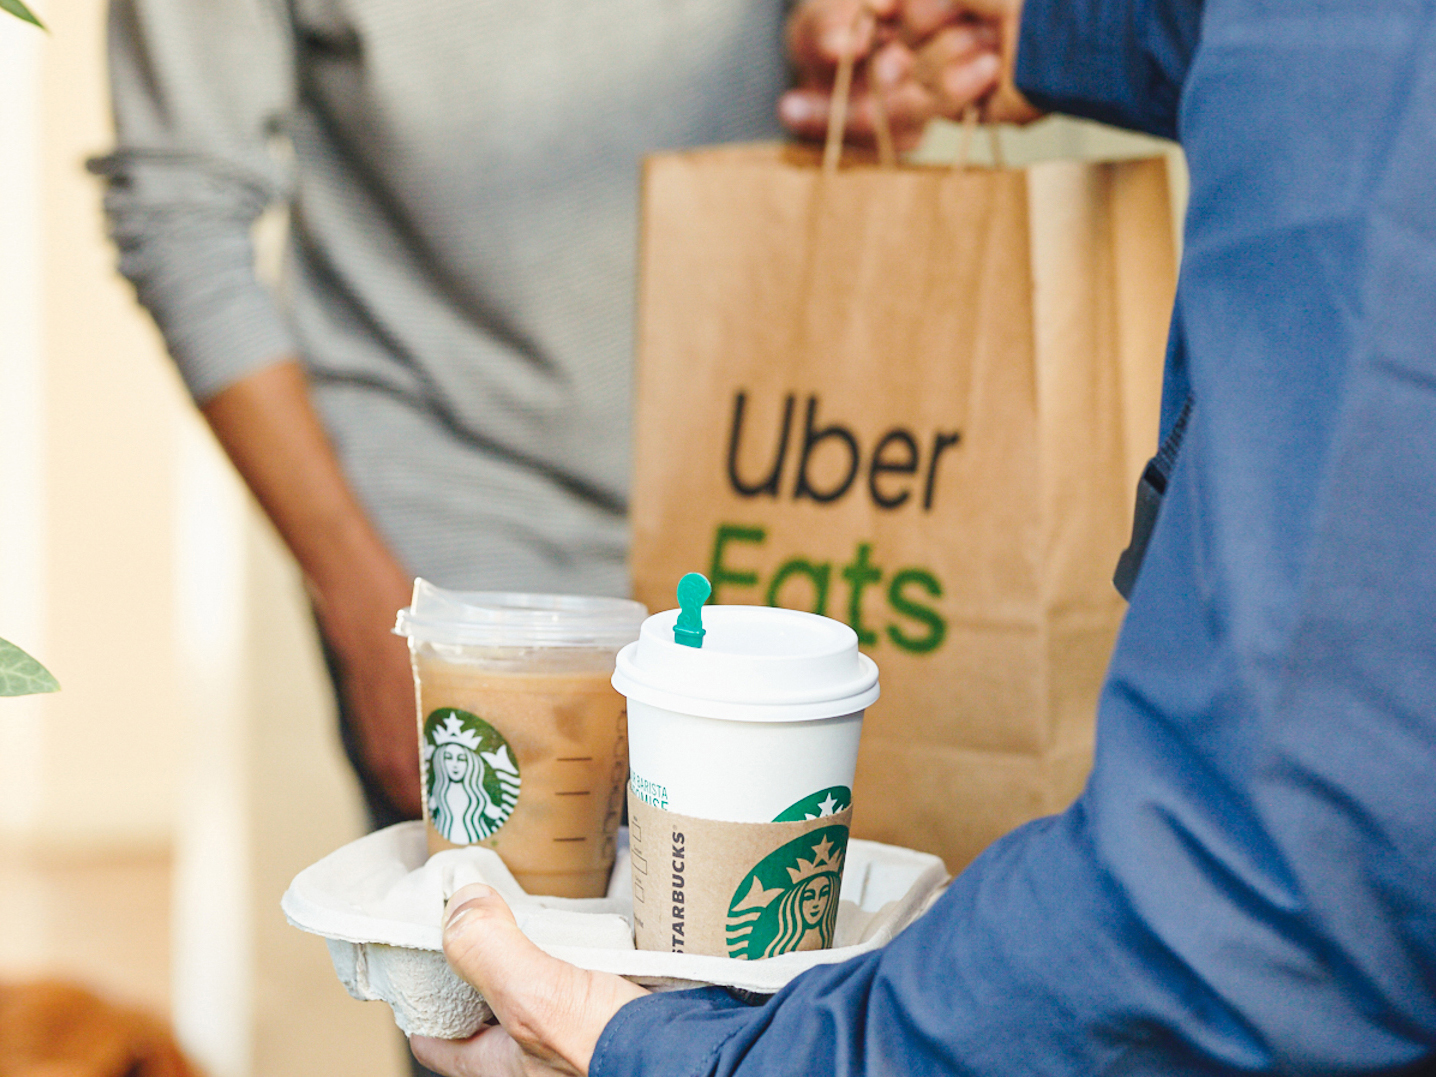 starbucks-uber-eats-delivery-FT-BLOG0719.jpg